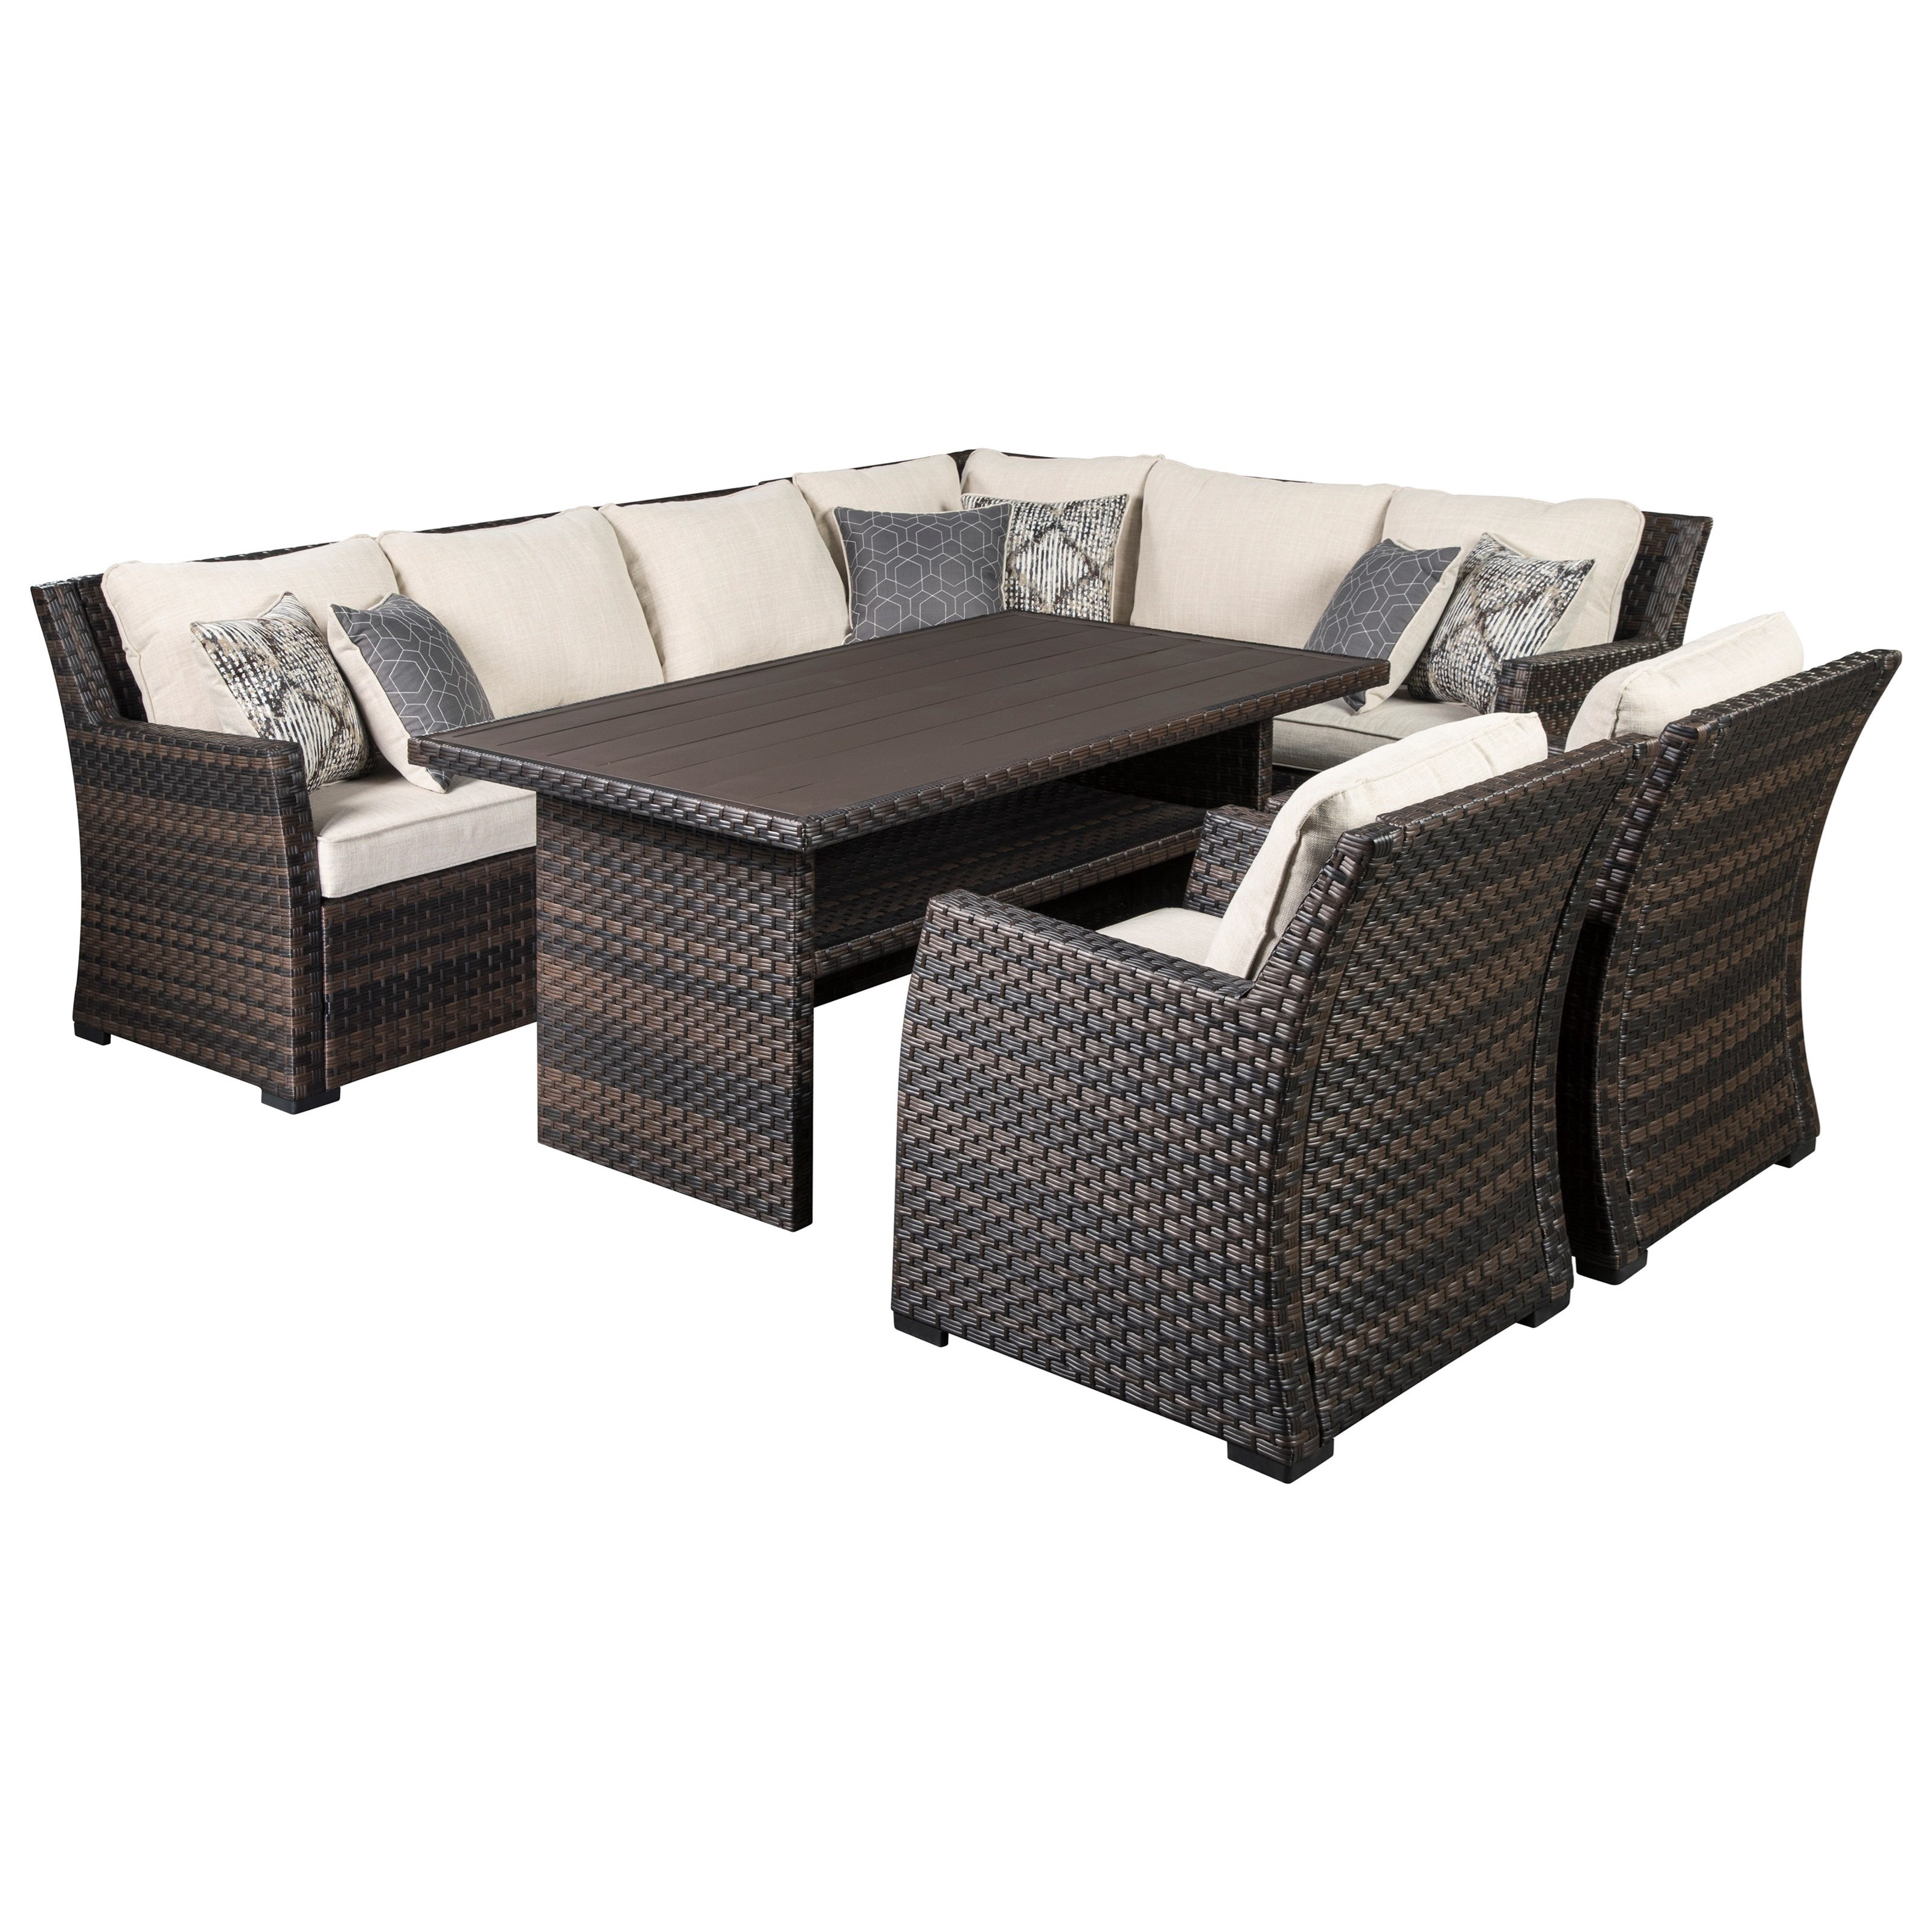 Easy Isle Outdoor Sectional with Table & 2 Chairs by Signature Design by Ashley at Northeast Factory Direct